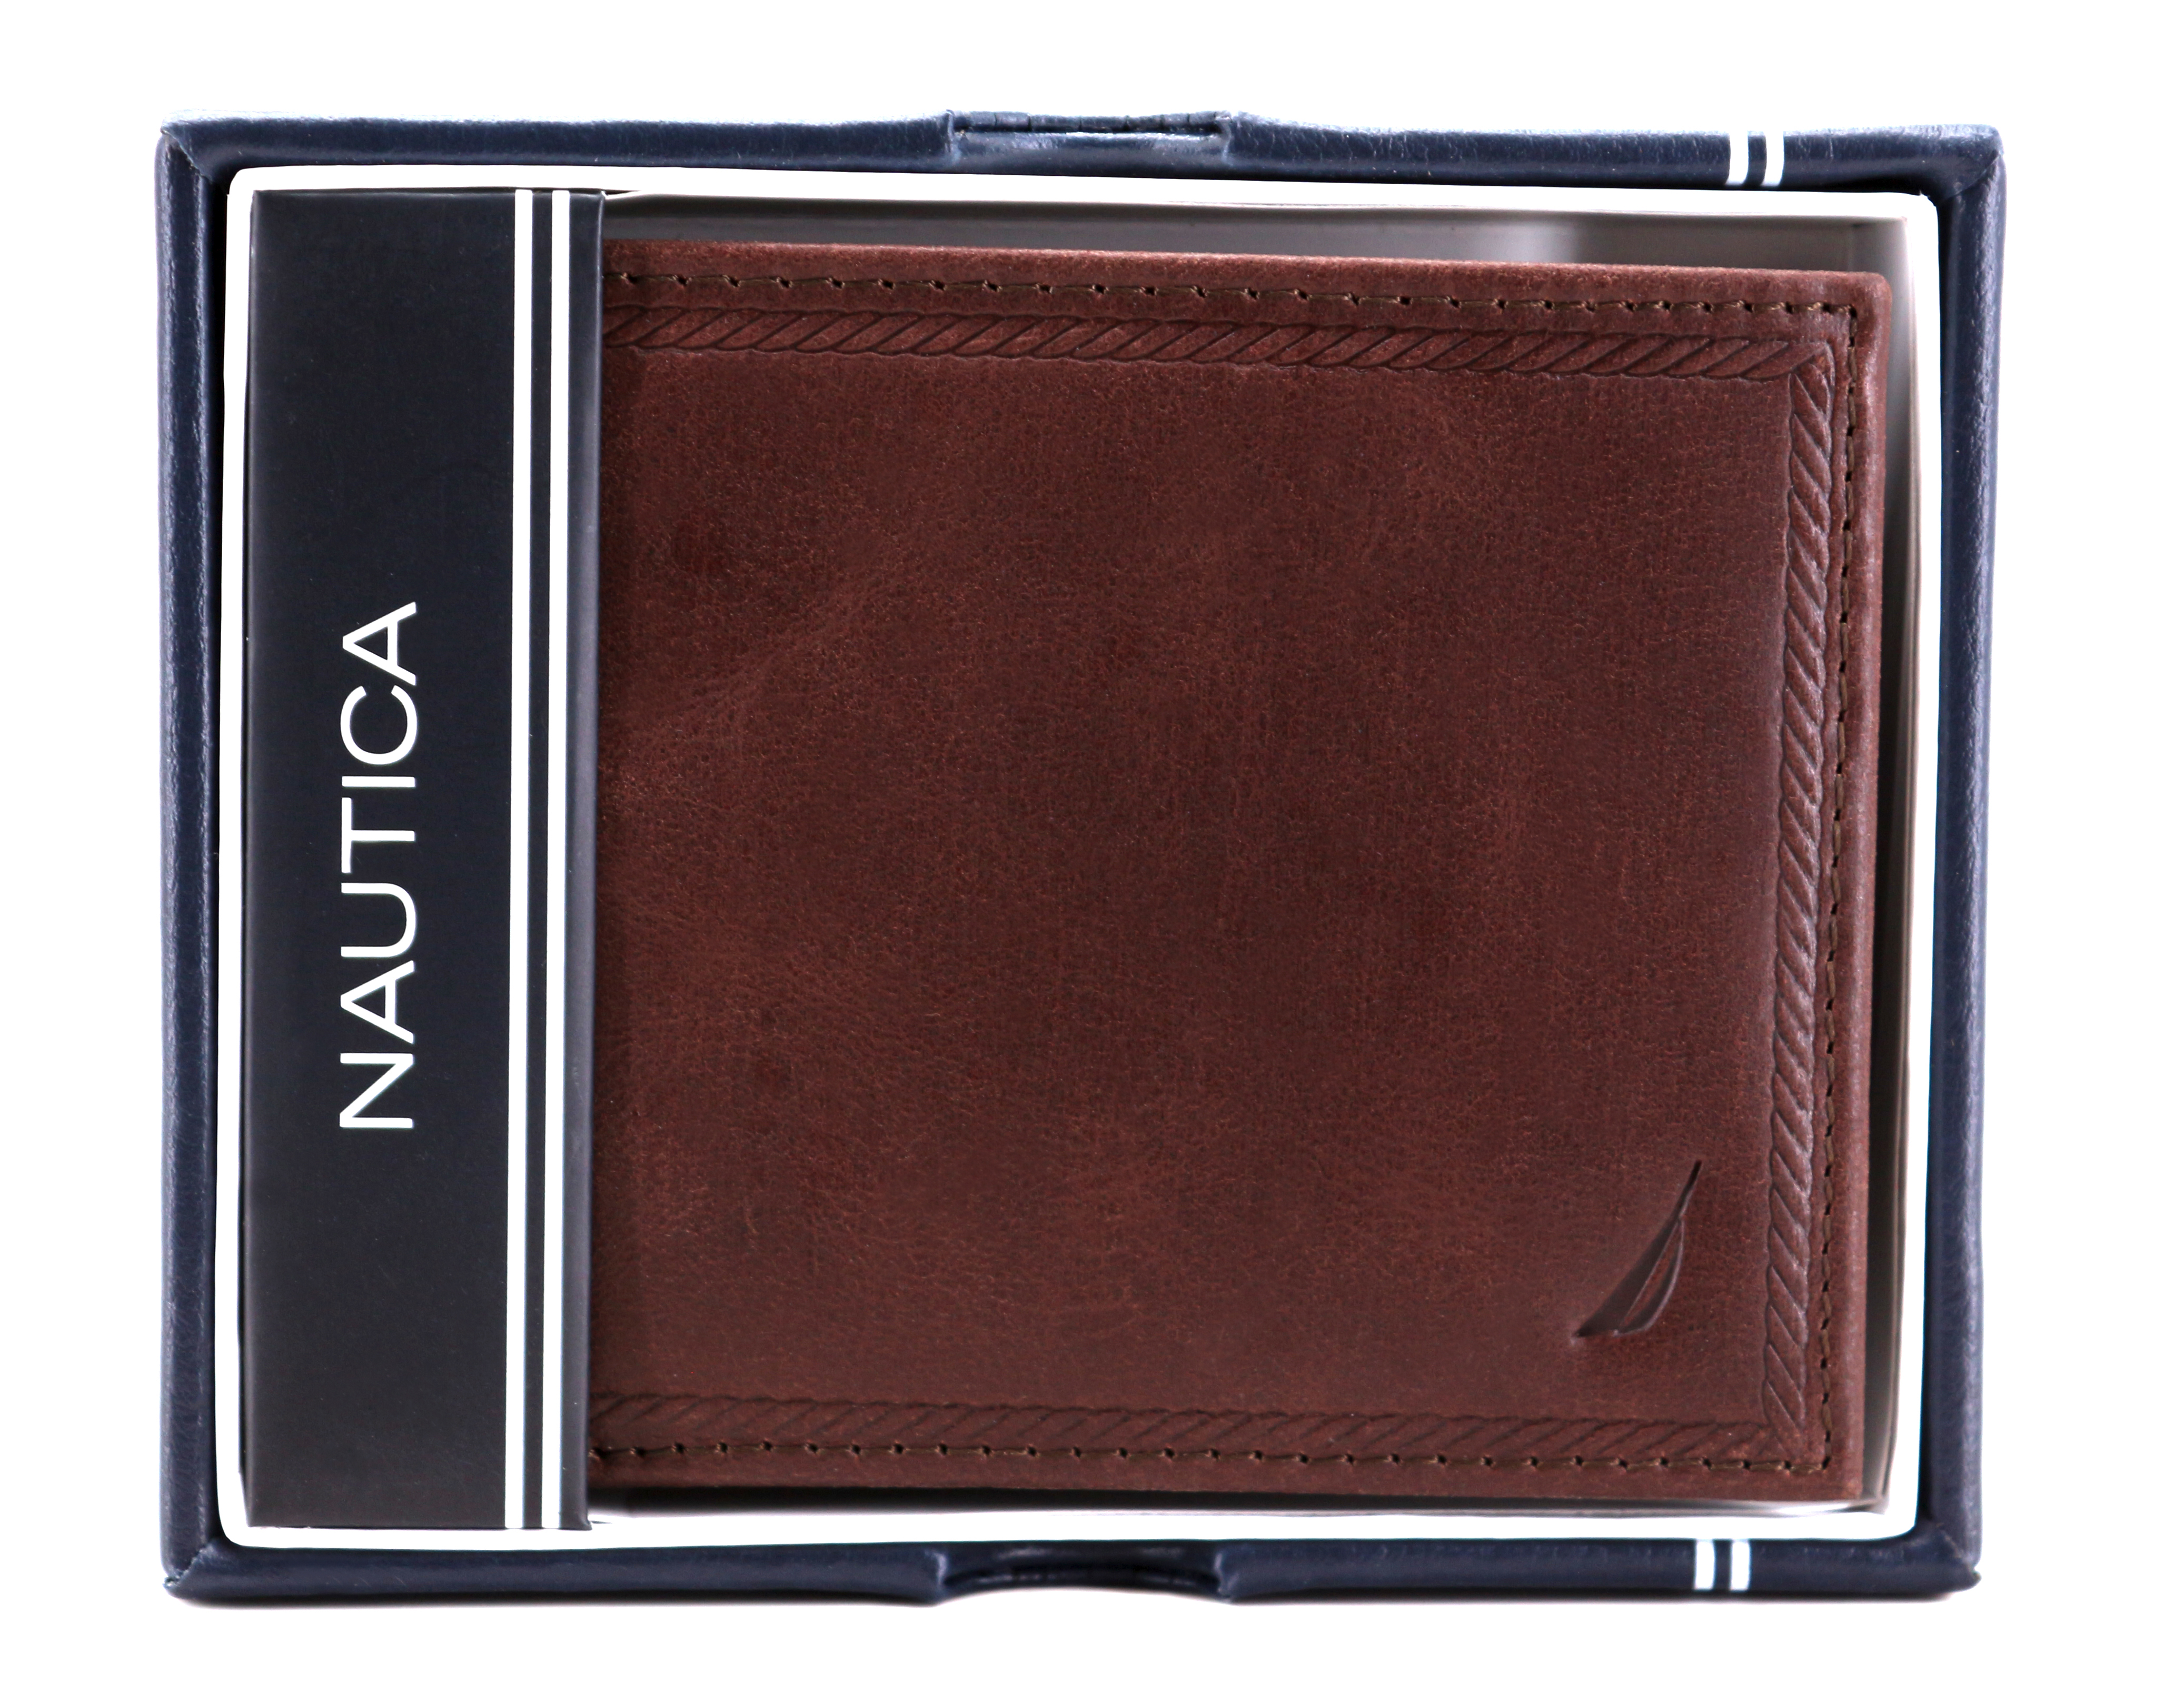 Nautica-Men-039-s-Genuine-Vintage-Leather-Credit-Card-ID-Billfold-Passcase-Wallet thumbnail 17